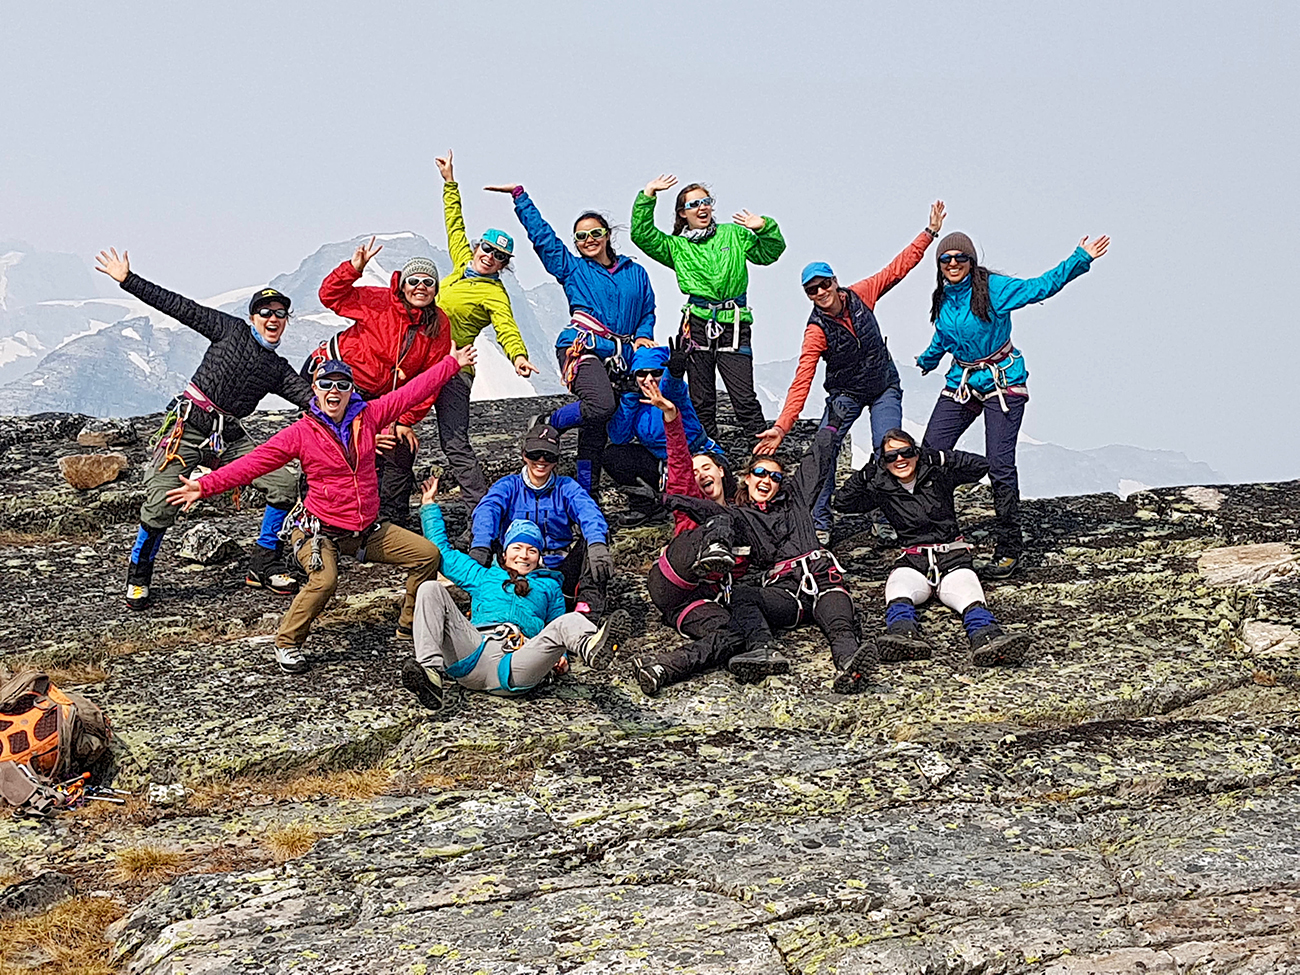 Back row (left to right):  Rosemarie Smith, Haylee Yellowbird, Cece Mortenson (mountain guide), Salimah Steffensen, Chloe Urbanowski, Allison Andrews (mountain guide), Alyana Lalani.   Middle row:  Ellie Bash (glaciologist), Olivia Smith, Yumna Sakkar, Leilu Munro, Kaya Oro Martin, Jordanna Young.  Centre front: Jocelyn Hirose.